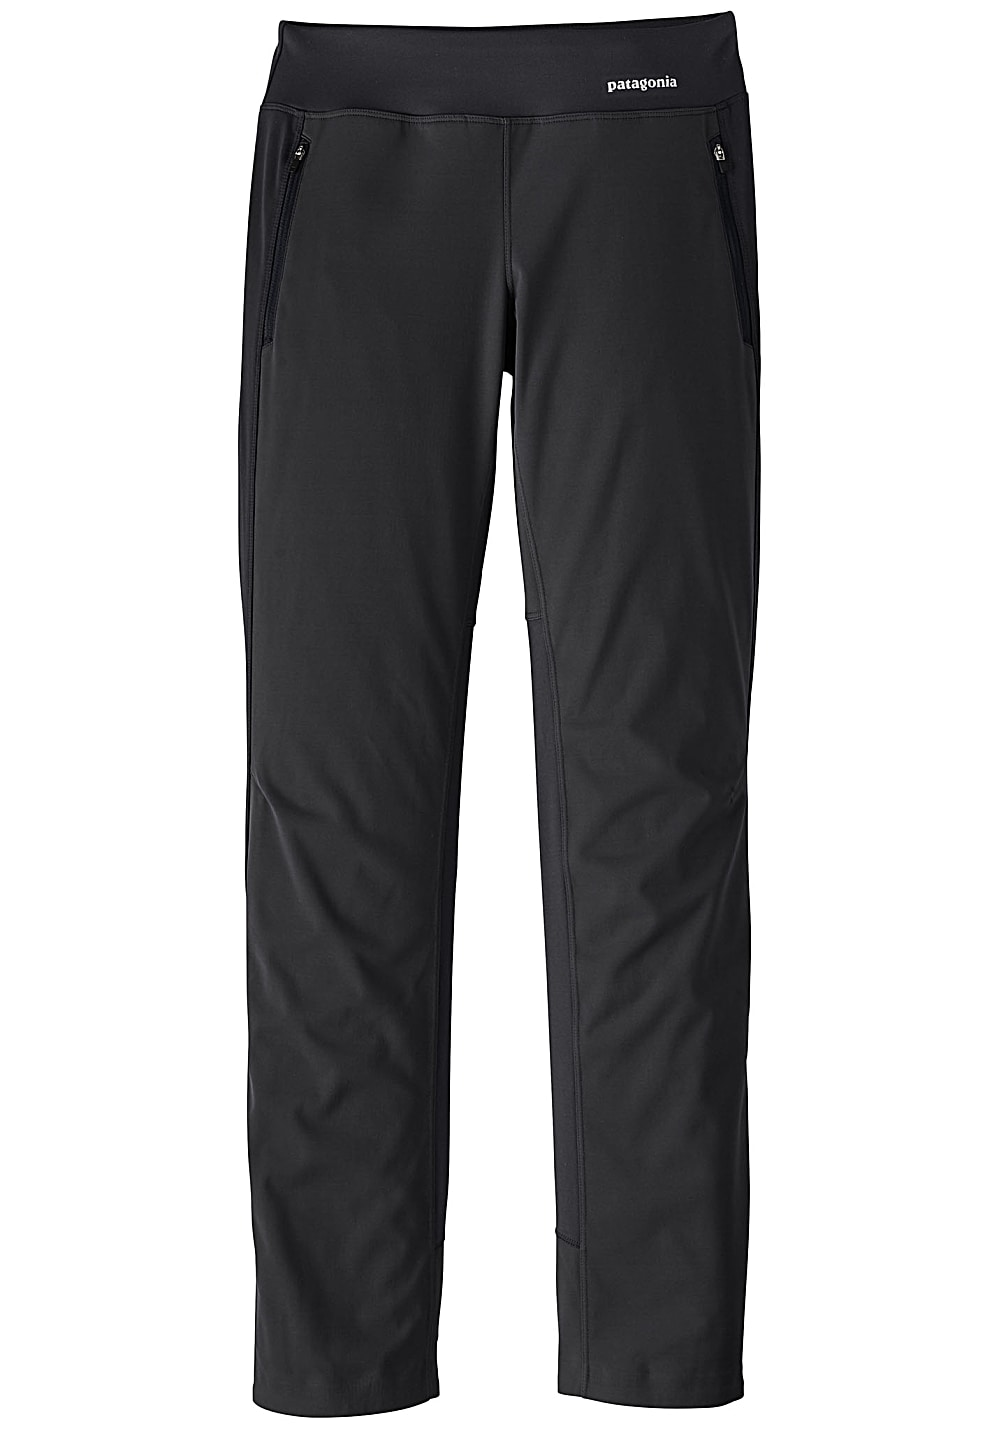 Patagonia Wind Shield - Outdoorhose für Damen - Schwarz